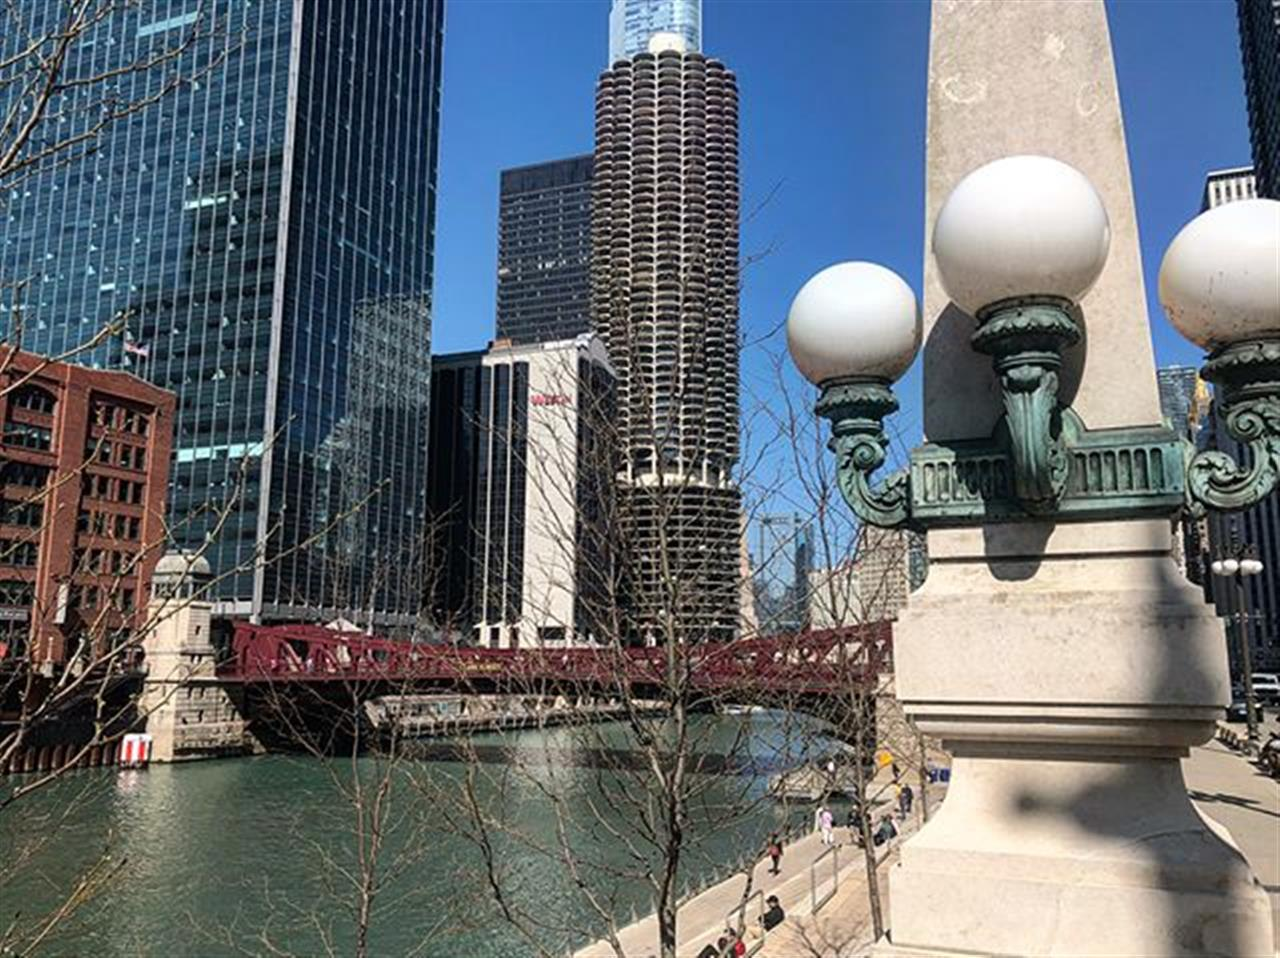 Perfect spring weather thatÔÇÖs ideal for a long afternoon walk. .. .. .. #chicago #river #chicagoriverwalk #chicagoriver #walk #afternoonwalk #afternoon #chi #sunshine #sunny #10000steps #bairdwarner #leadingrelocal #realestate #chicagorealestate